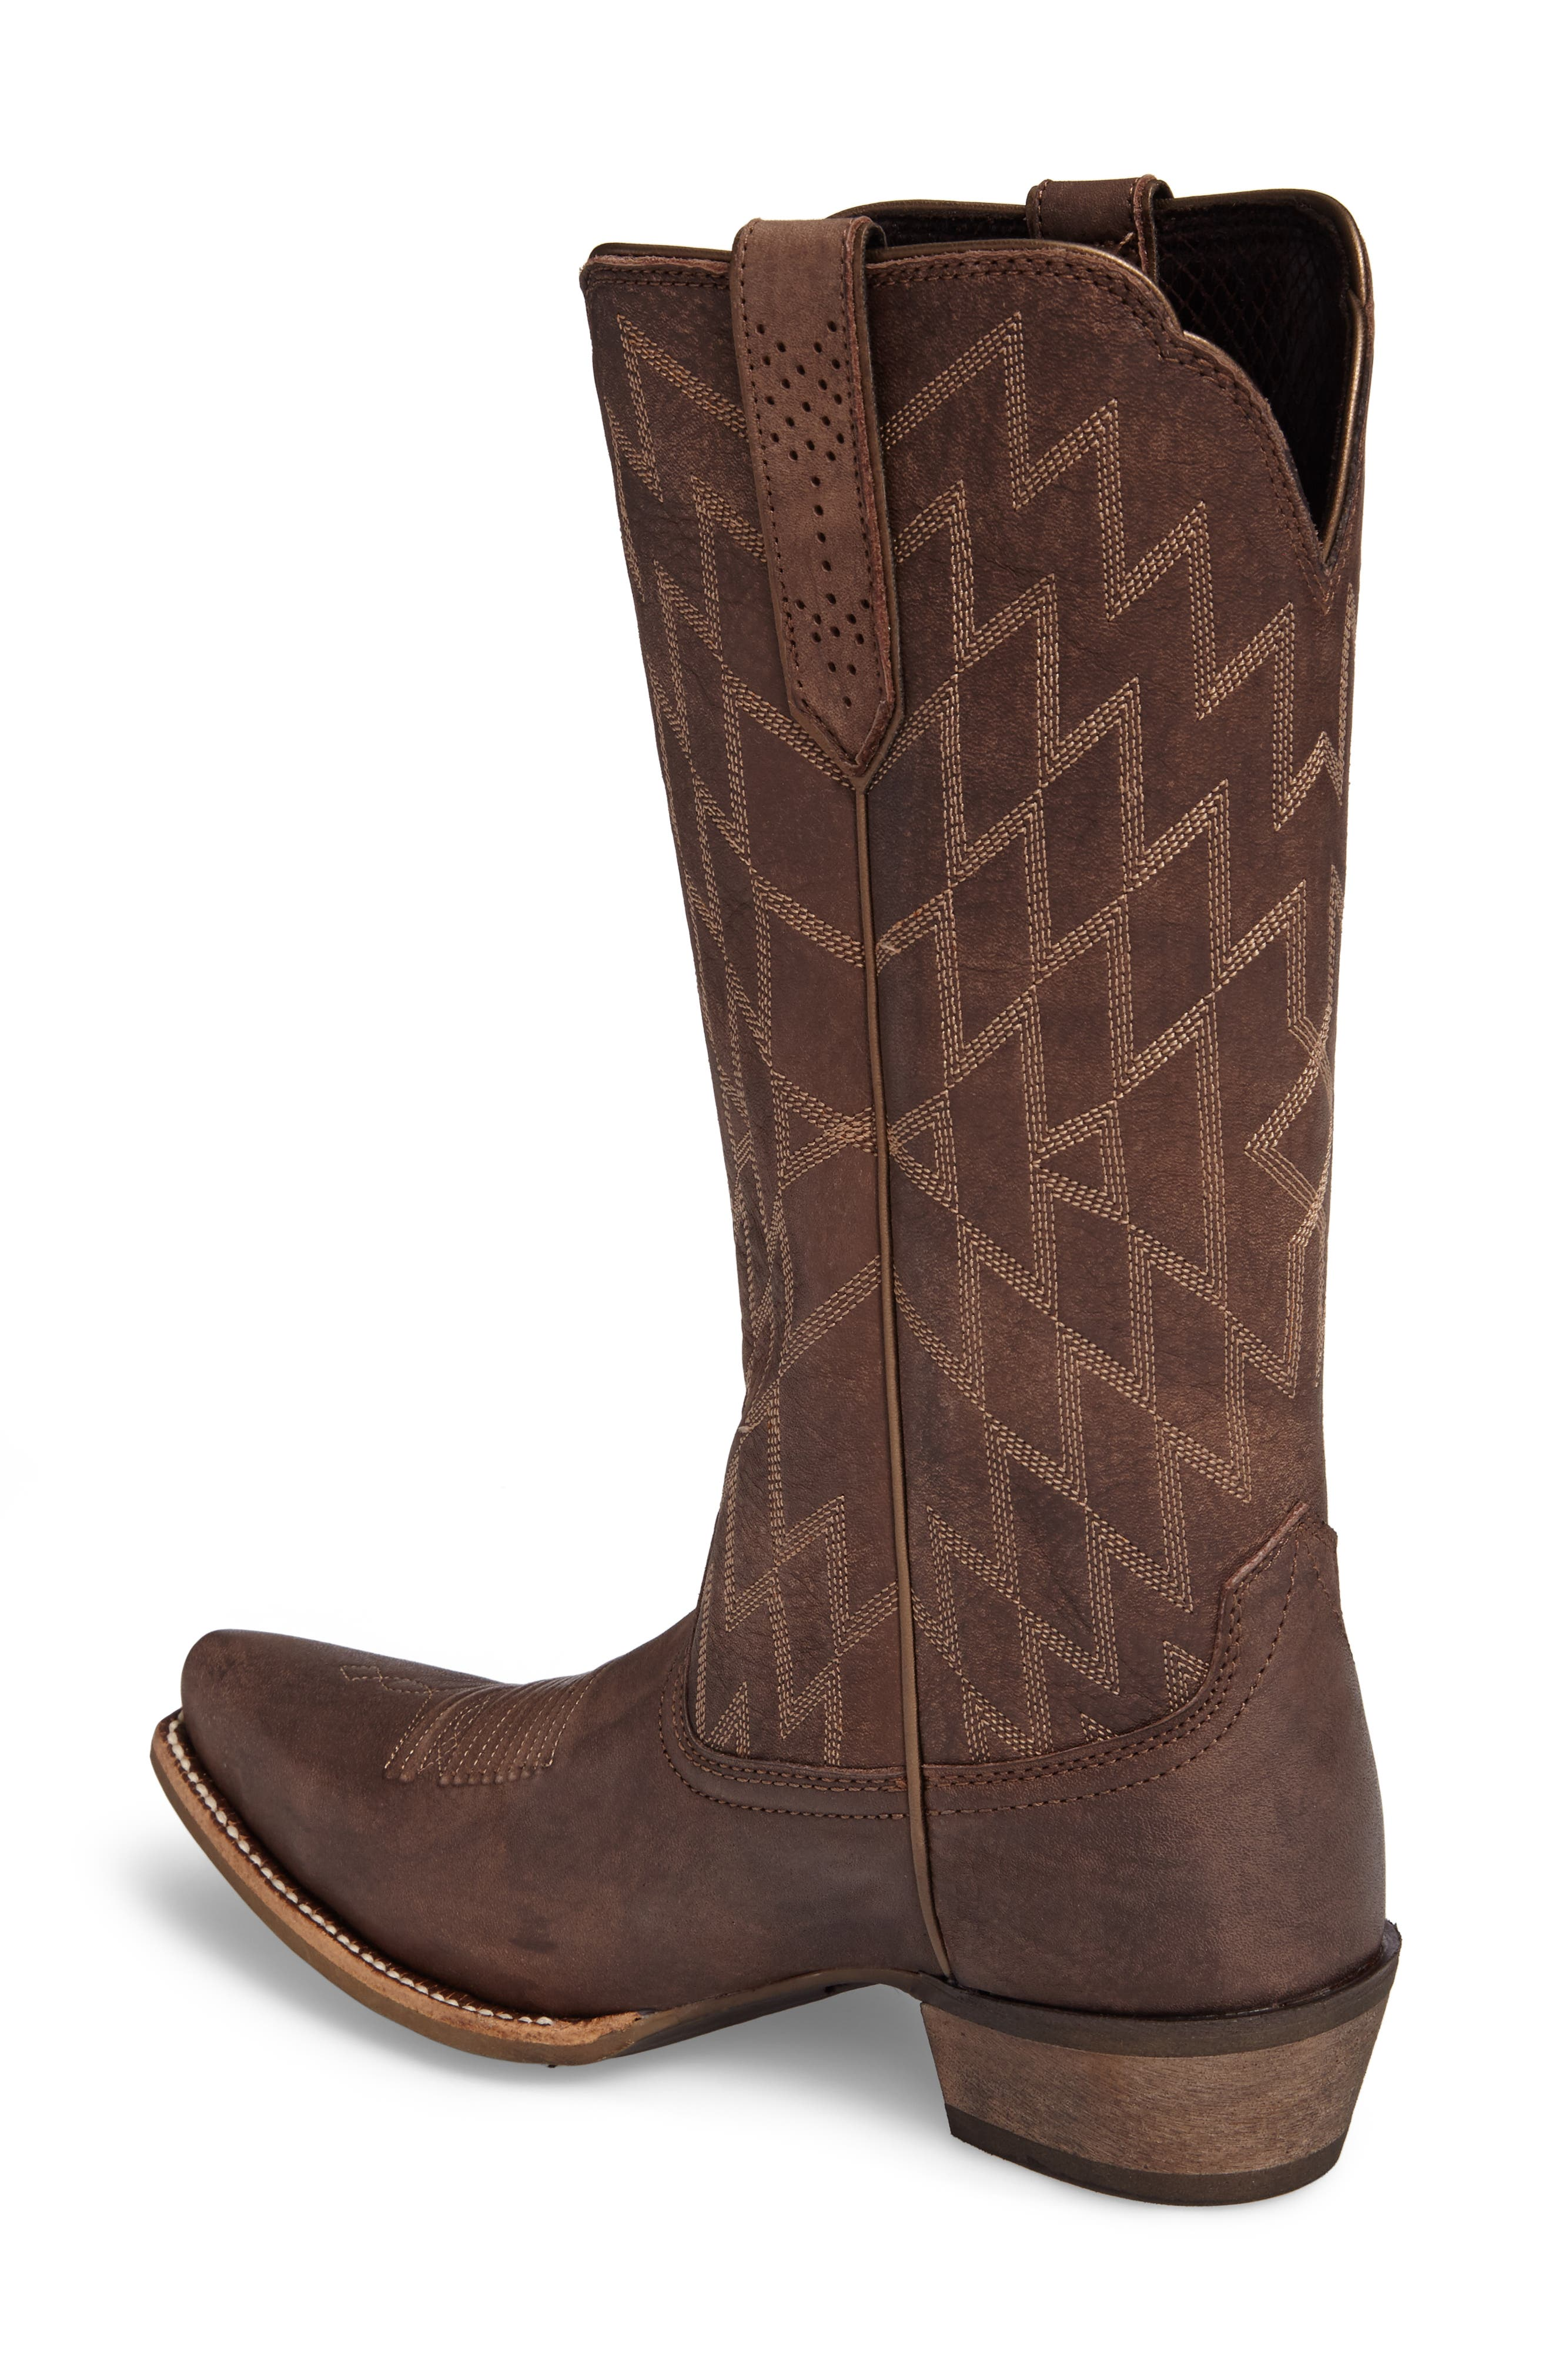 Heritage Southwestern X-Toe Boot,                             Alternate thumbnail 2, color,                             Tack Room Chocolate Leather